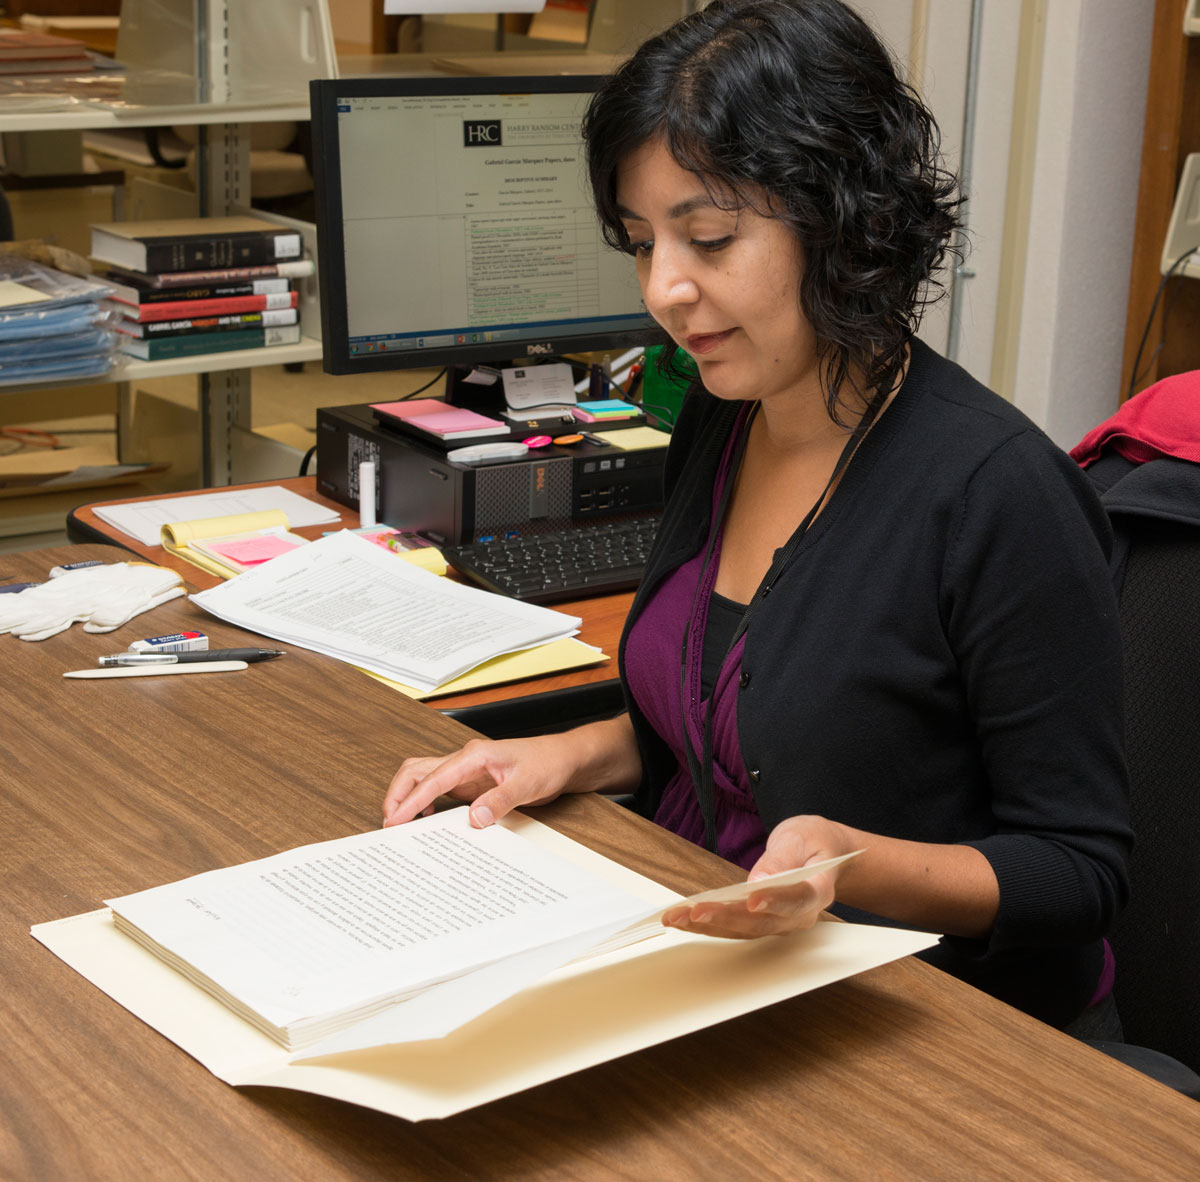 Daniela Lozano processing the Gabriel García Márquez Papers. Photo by Pete Smith. Daniela Lozano catalogando los Documentos de Gabriel García Márquez. Fotografía por Pete Smith.